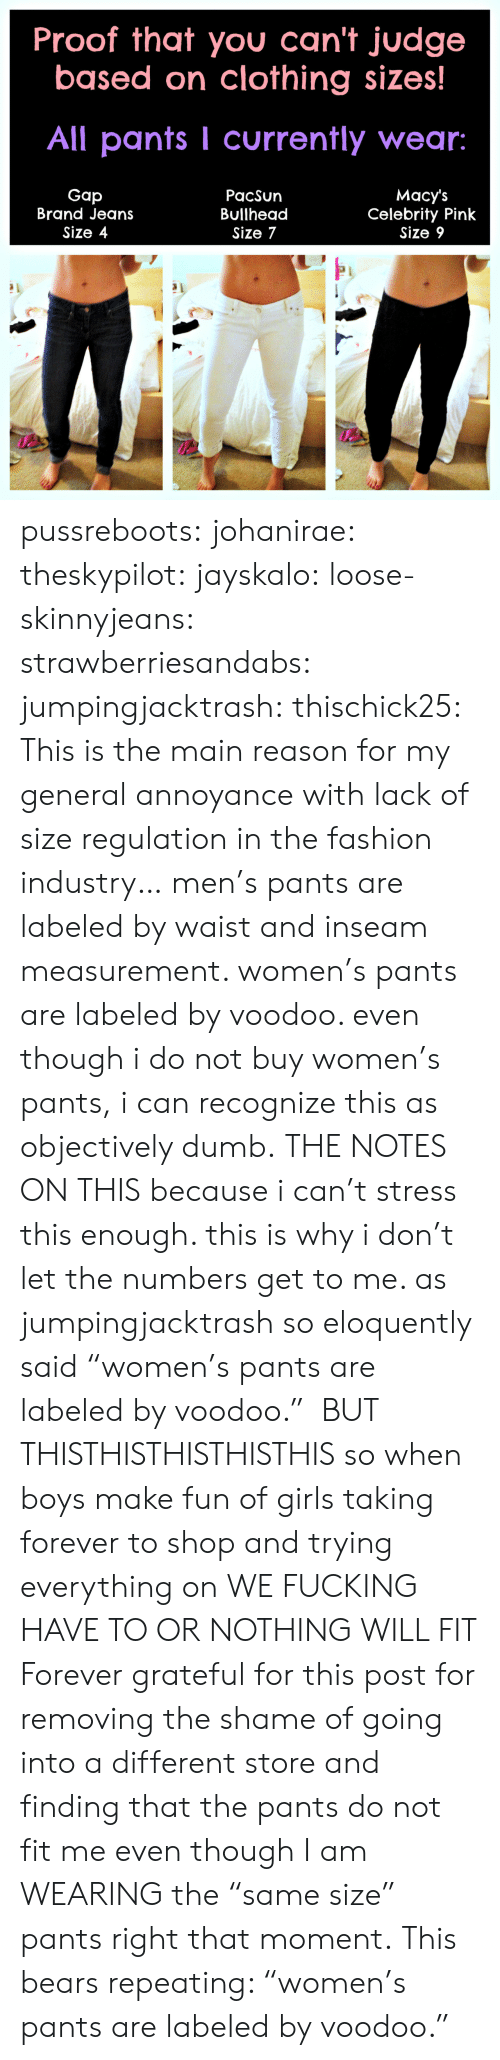 """Bailey Jay, Dumb, and Fashion: Proof that you can't judge  based on clothing sizes  All pants I currently wear:  Gap  Brand Jeans  Size 4  PacSun  Bullhead  Size 7  Macy's  Celebrity Pink  Size 9 pussreboots:  johanirae:  theskypilot:  jayskalo:  loose-skinnyjeans:  strawberriesandabs:  jumpingjacktrash:   thischick25:   This is the main reason for my general annoyance with lack of size regulation in the fashion industry…   men's pants are labeled by waist and inseam measurement. women's pants are labeled by voodoo. even though i do not buy women's pants, i can recognize this as objectively dumb.   THE NOTES ON THIS   because i can't stress this enough. this is why i don't let the numbers get to me. as jumpingjacktrash so eloquently said """"women's pants are labeled by voodoo.""""  BUT THISTHISTHISTHISTHIS  so when boys make fun of girls taking forever to shop and trying everything on WE FUCKING HAVE TO OR NOTHING WILL FIT  Forever grateful for this post for removing the shame of going into a different store and finding that the pants do not fit me even though I am WEARING the """"same size"""" pants right that moment.  This bears repeating: """"women's pants are labeled by voodoo."""""""